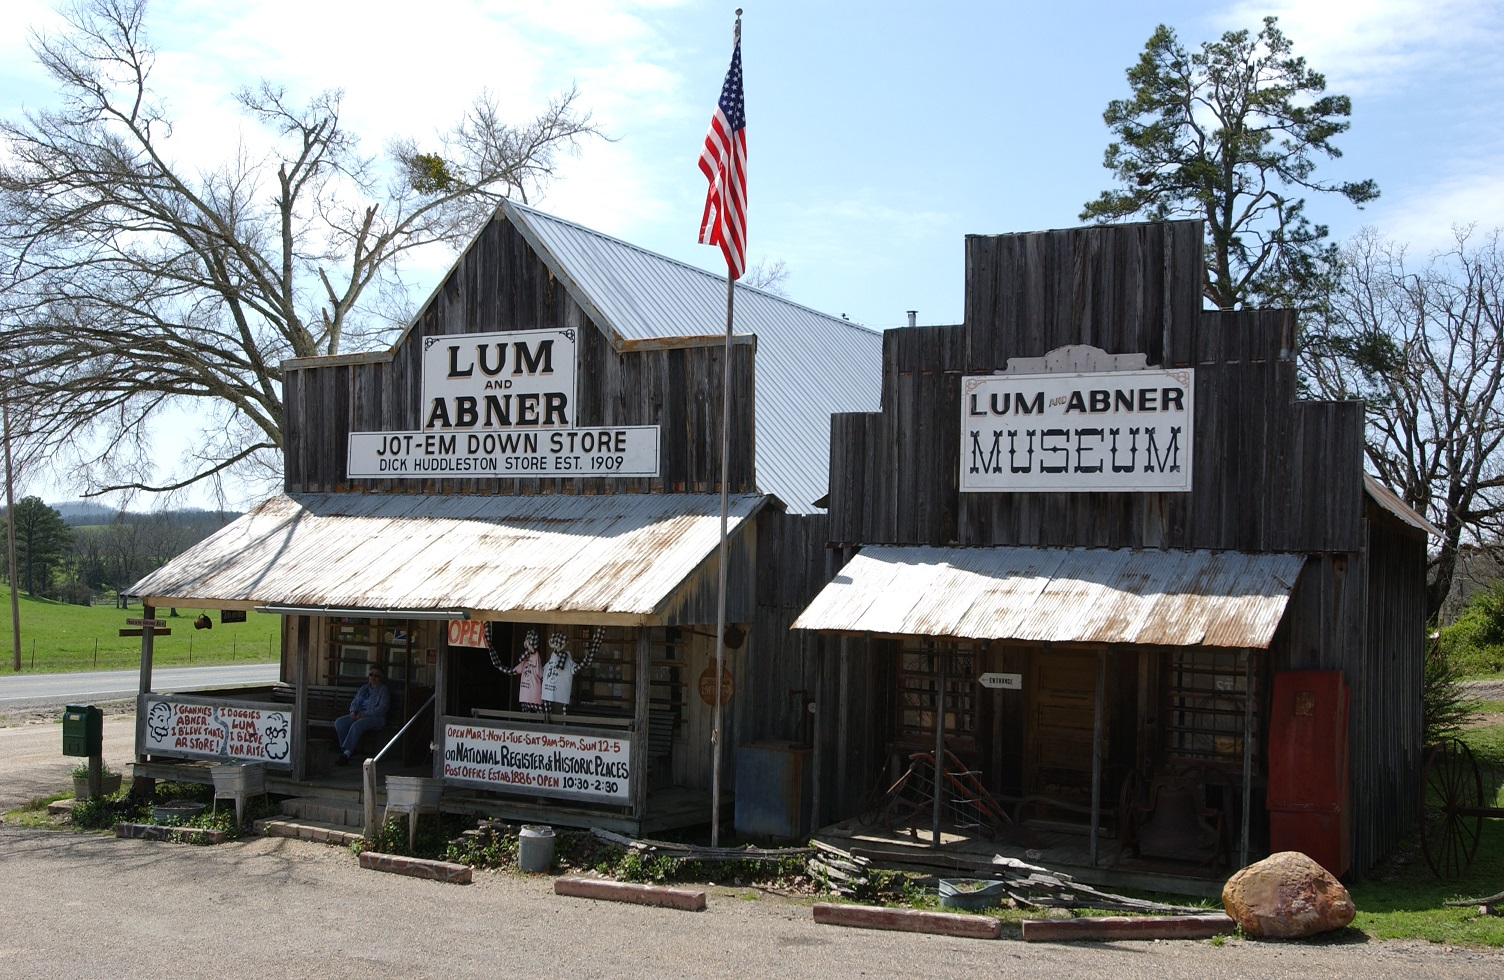 Lum & Abner Jot 'Em Down Store and Museum